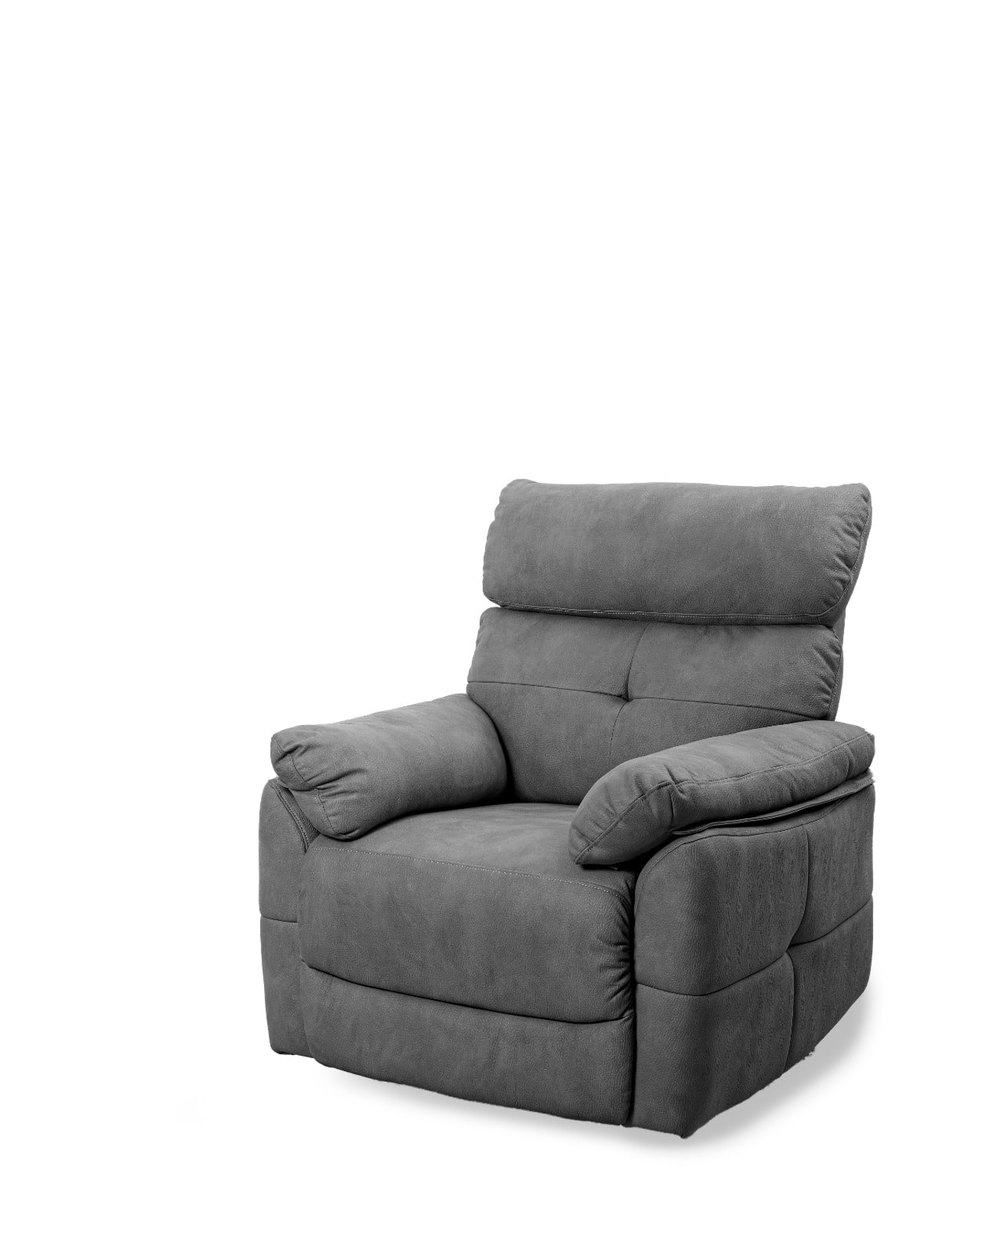 2021 newest Cheap fabric recliner sofa manual recliner chair for sale